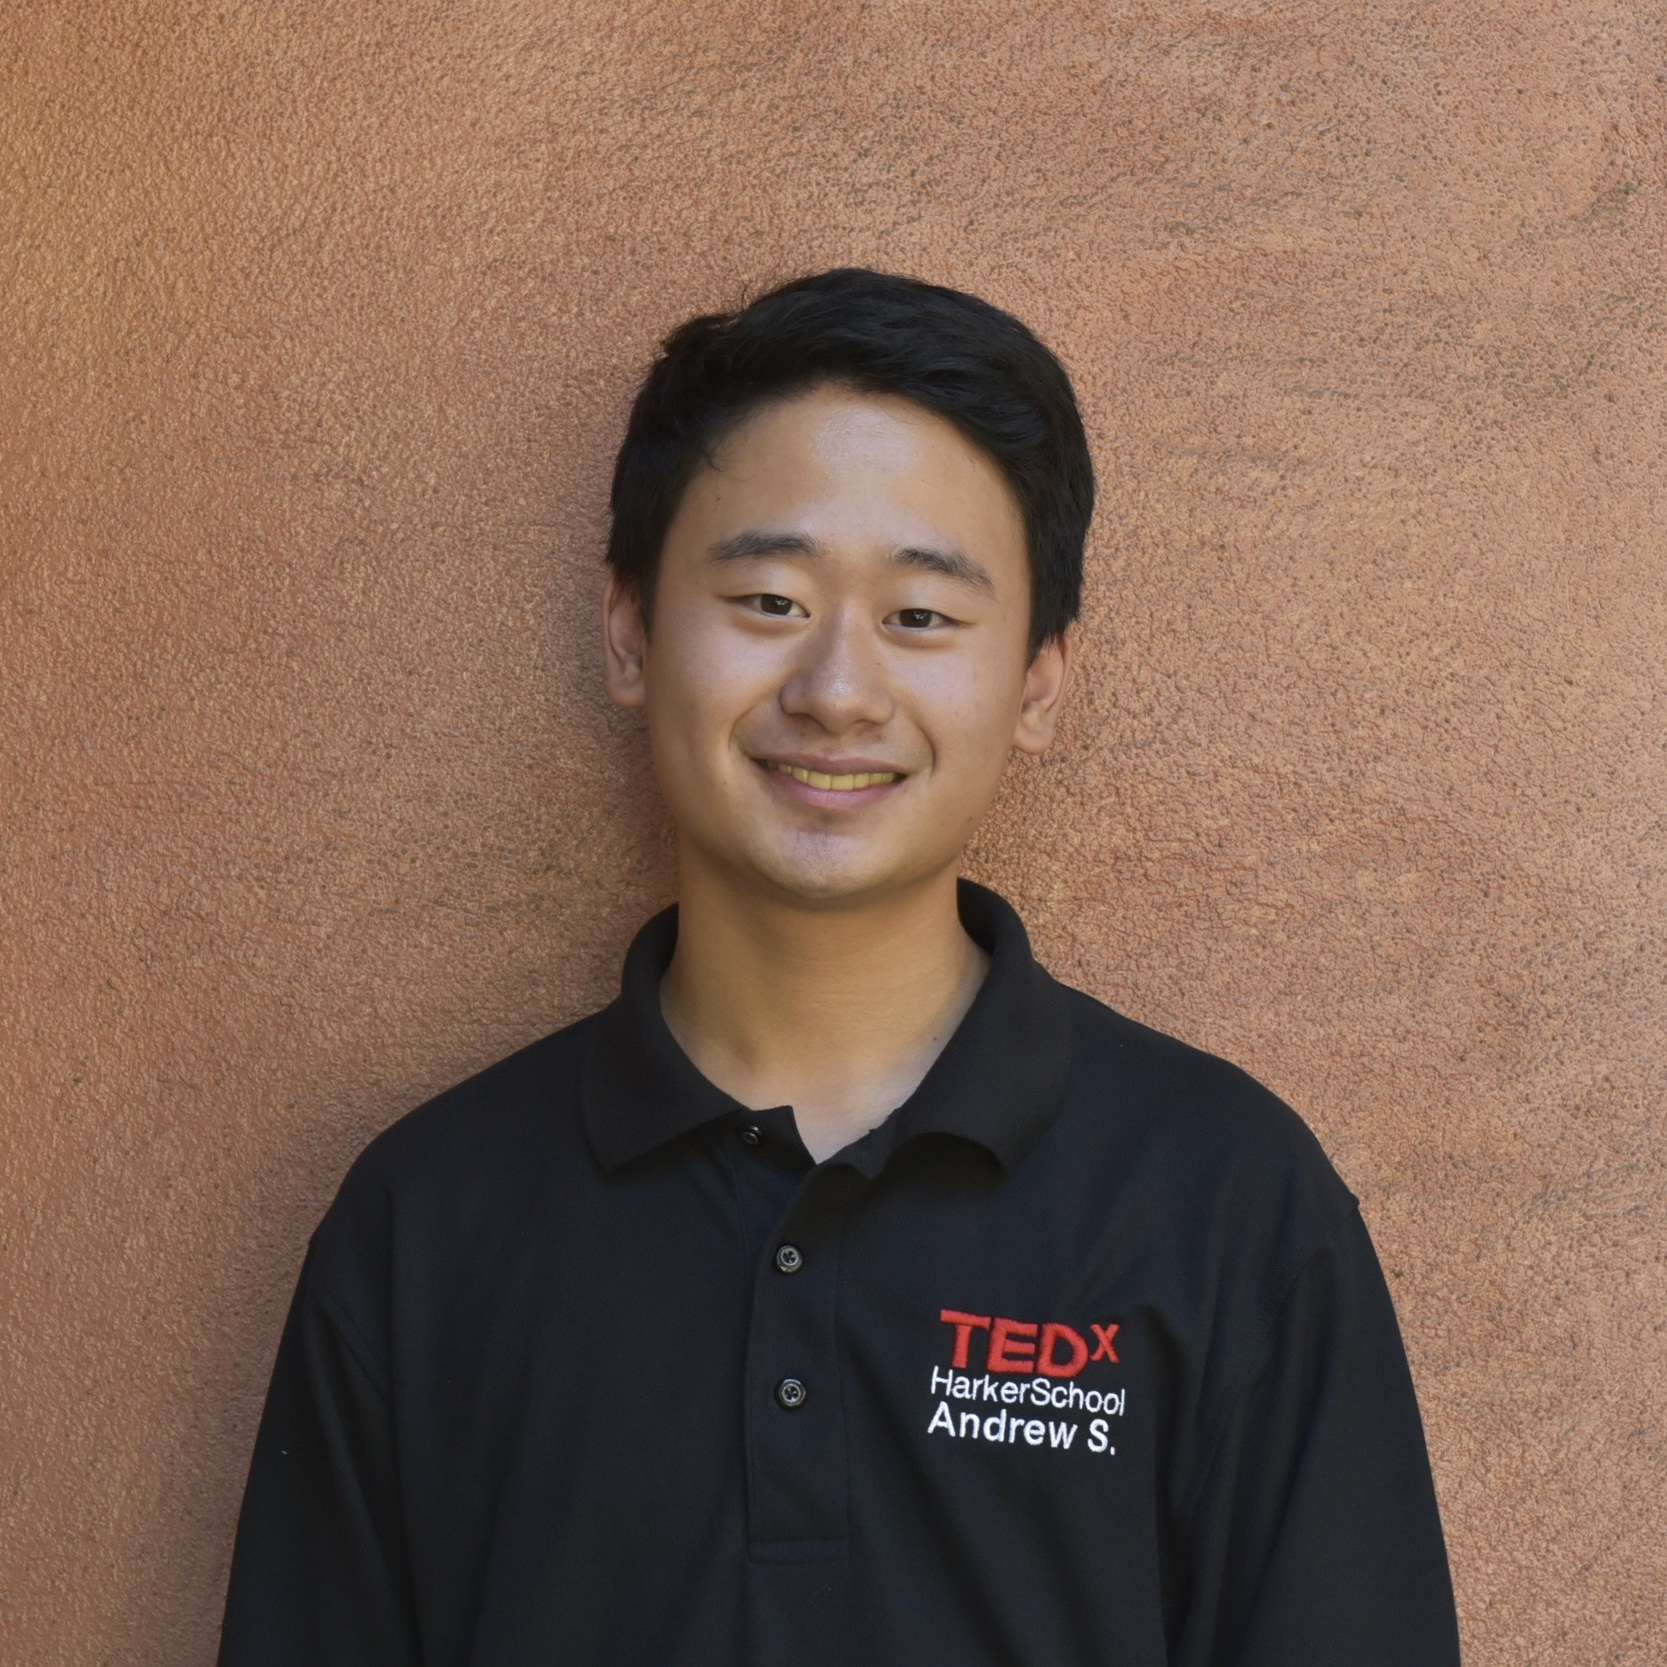 andrew sun - Andrew Sun is a junior at The Harker School in San Jose and an Operations Associate for TEDx. Aside from TEDx, he is an avid congressional debater, having done the event since middle school. Doing speech and debate has taught him the value of communicating and sharing new ideas. Additionally, he heads Nanoseed, a non-profit organization that provides grants and low interest student and business loans in rural China. He also competes in DECA and plays the oboe. Outside of school, he enjoys playing competitive soccer as an opportunity to destress and exercise, and he can also be found listening to music and reading.